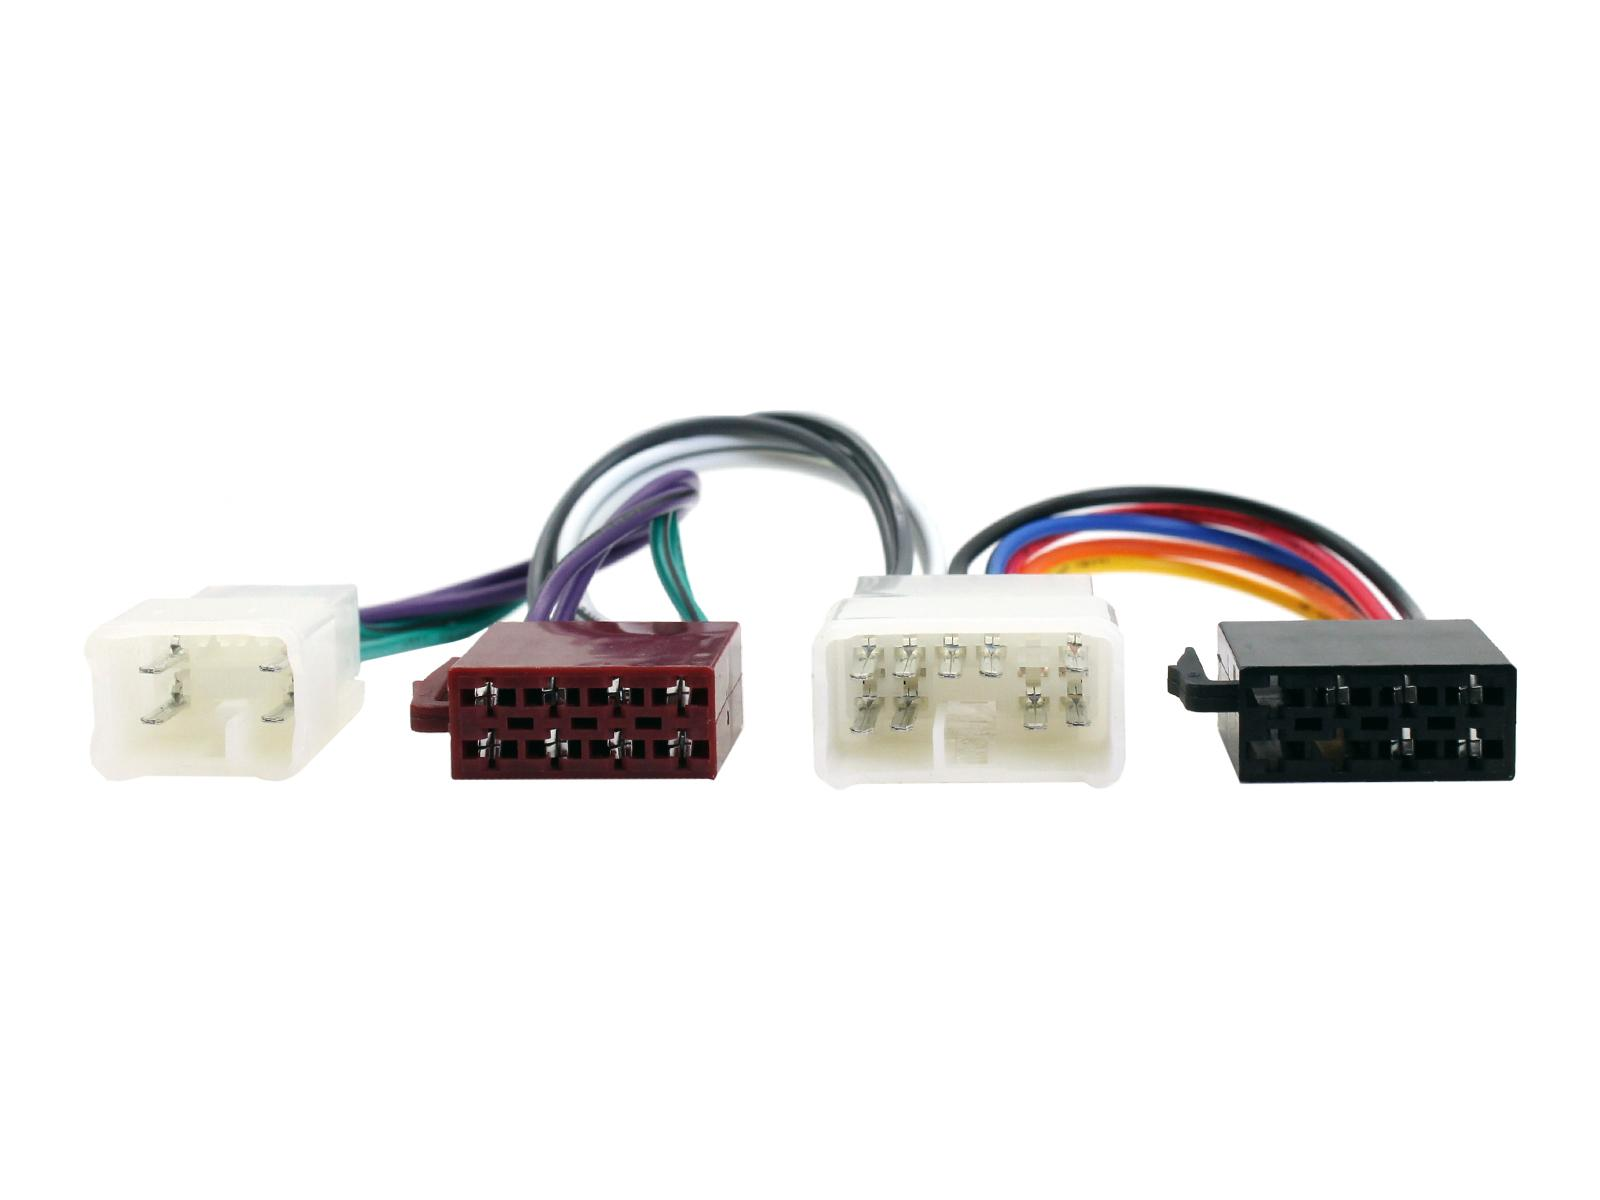 Connects2 Ltd Late Model Universal Wiring Harness Kits For Vehicles Vehicle Application Guide